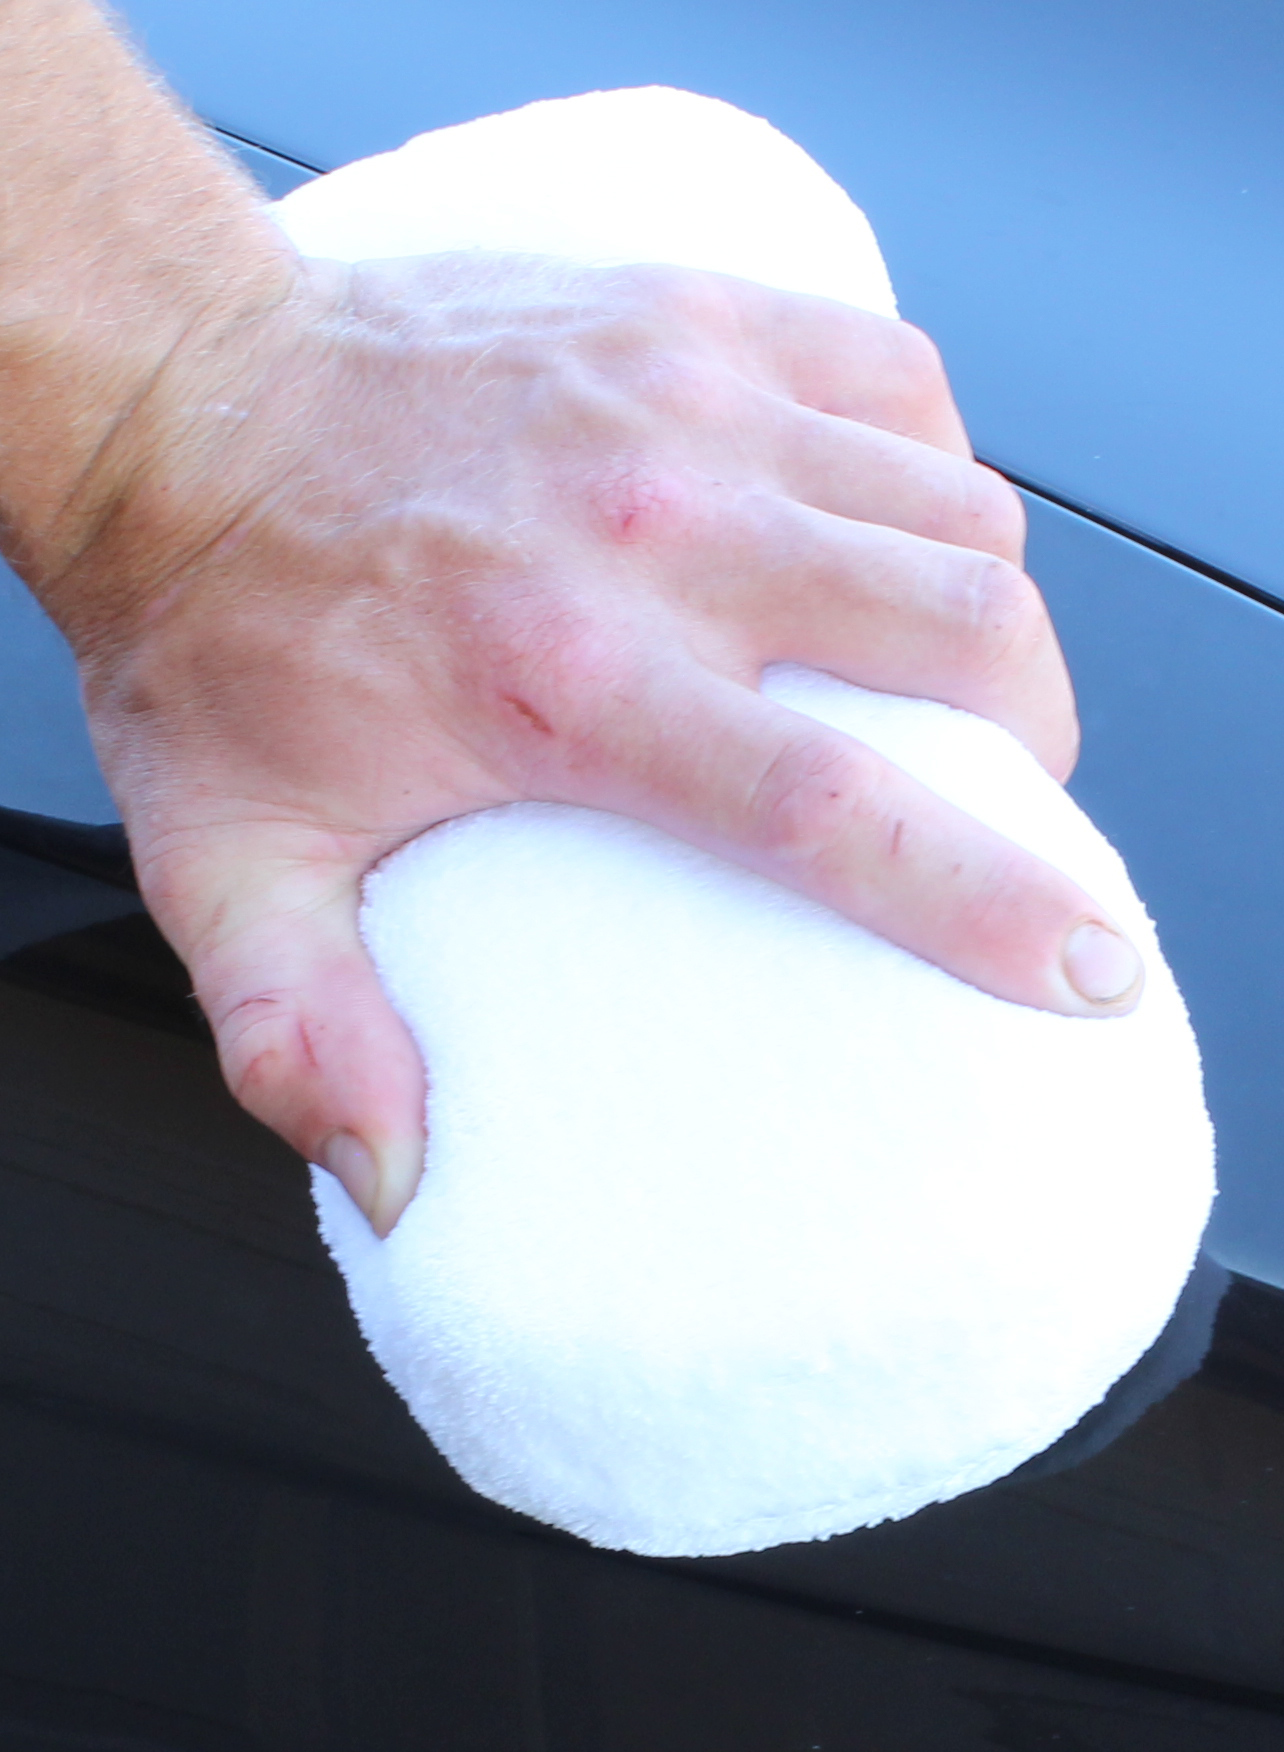 ABN-White-Long-Pile-Microfiber-Cleaning-Sponge-for-Car-Wash-and-Detailing thumbnail 15